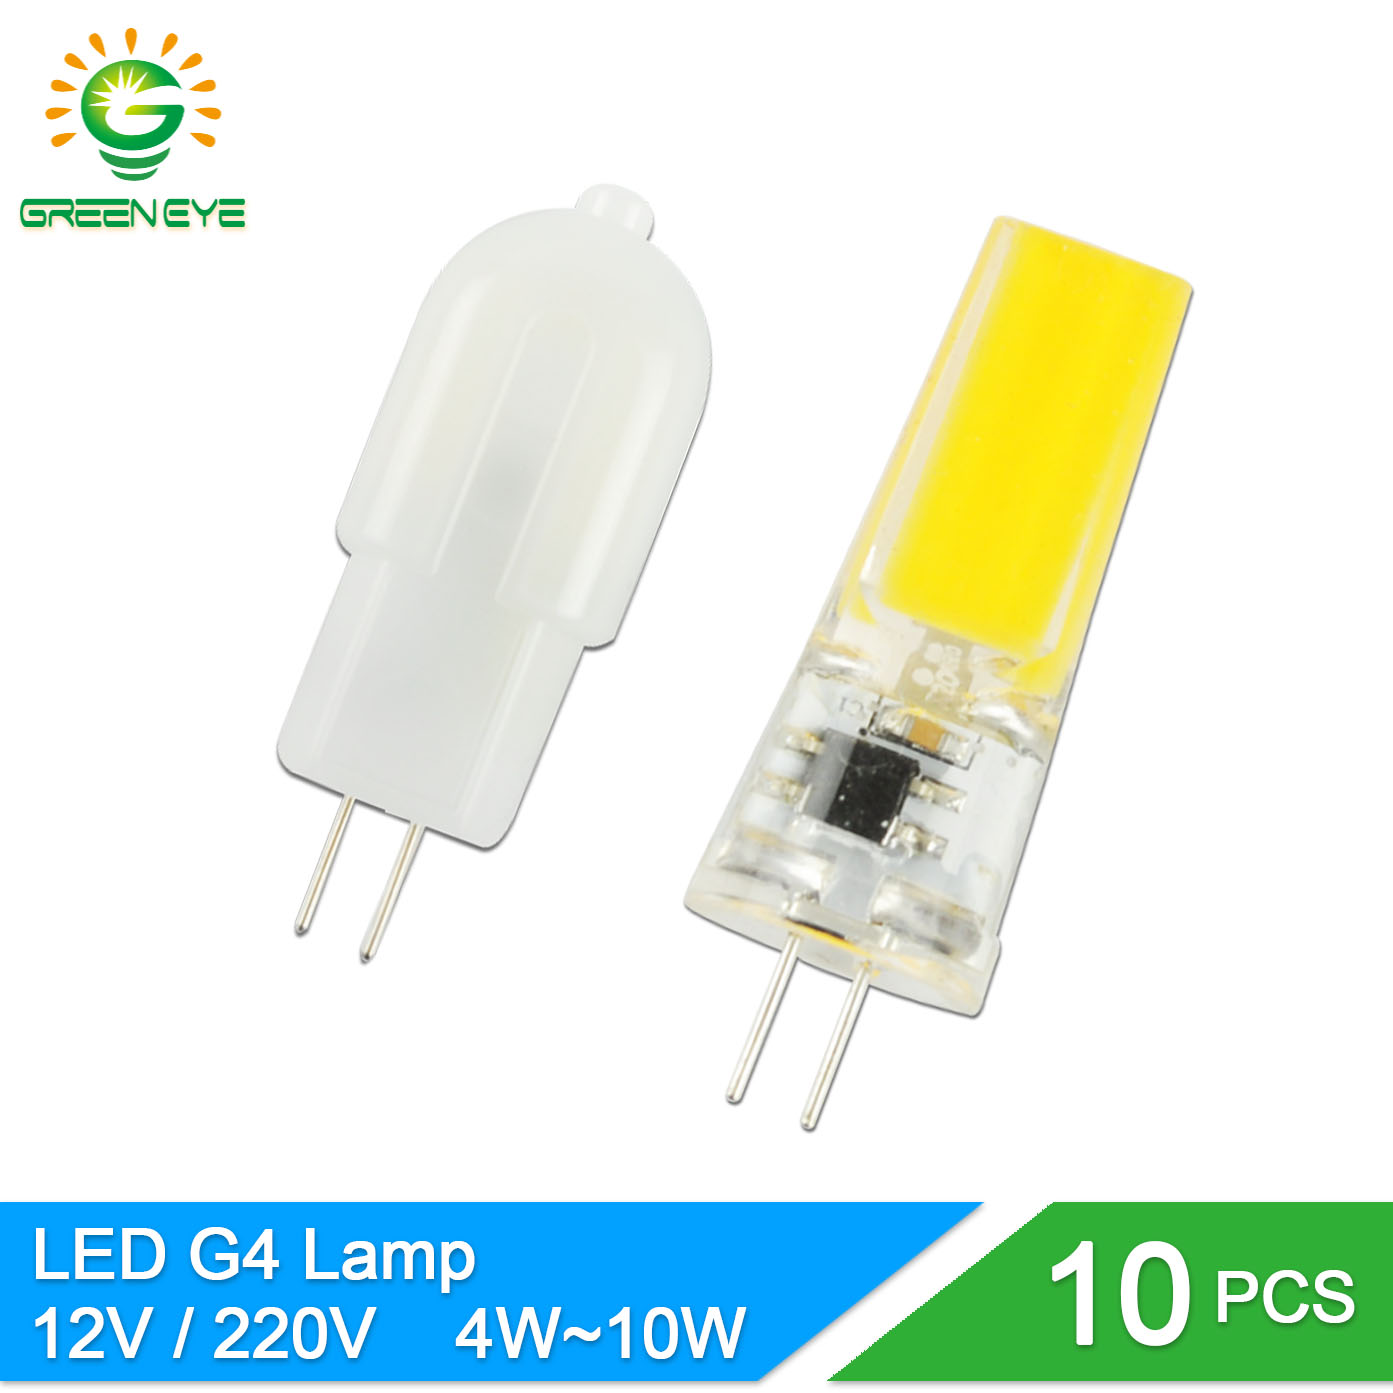 greeneye 10pcs mini g4 led lamp ac220v acdc12v smd2835 4w 6w 10w dimmable ampoule lampada led. Black Bedroom Furniture Sets. Home Design Ideas